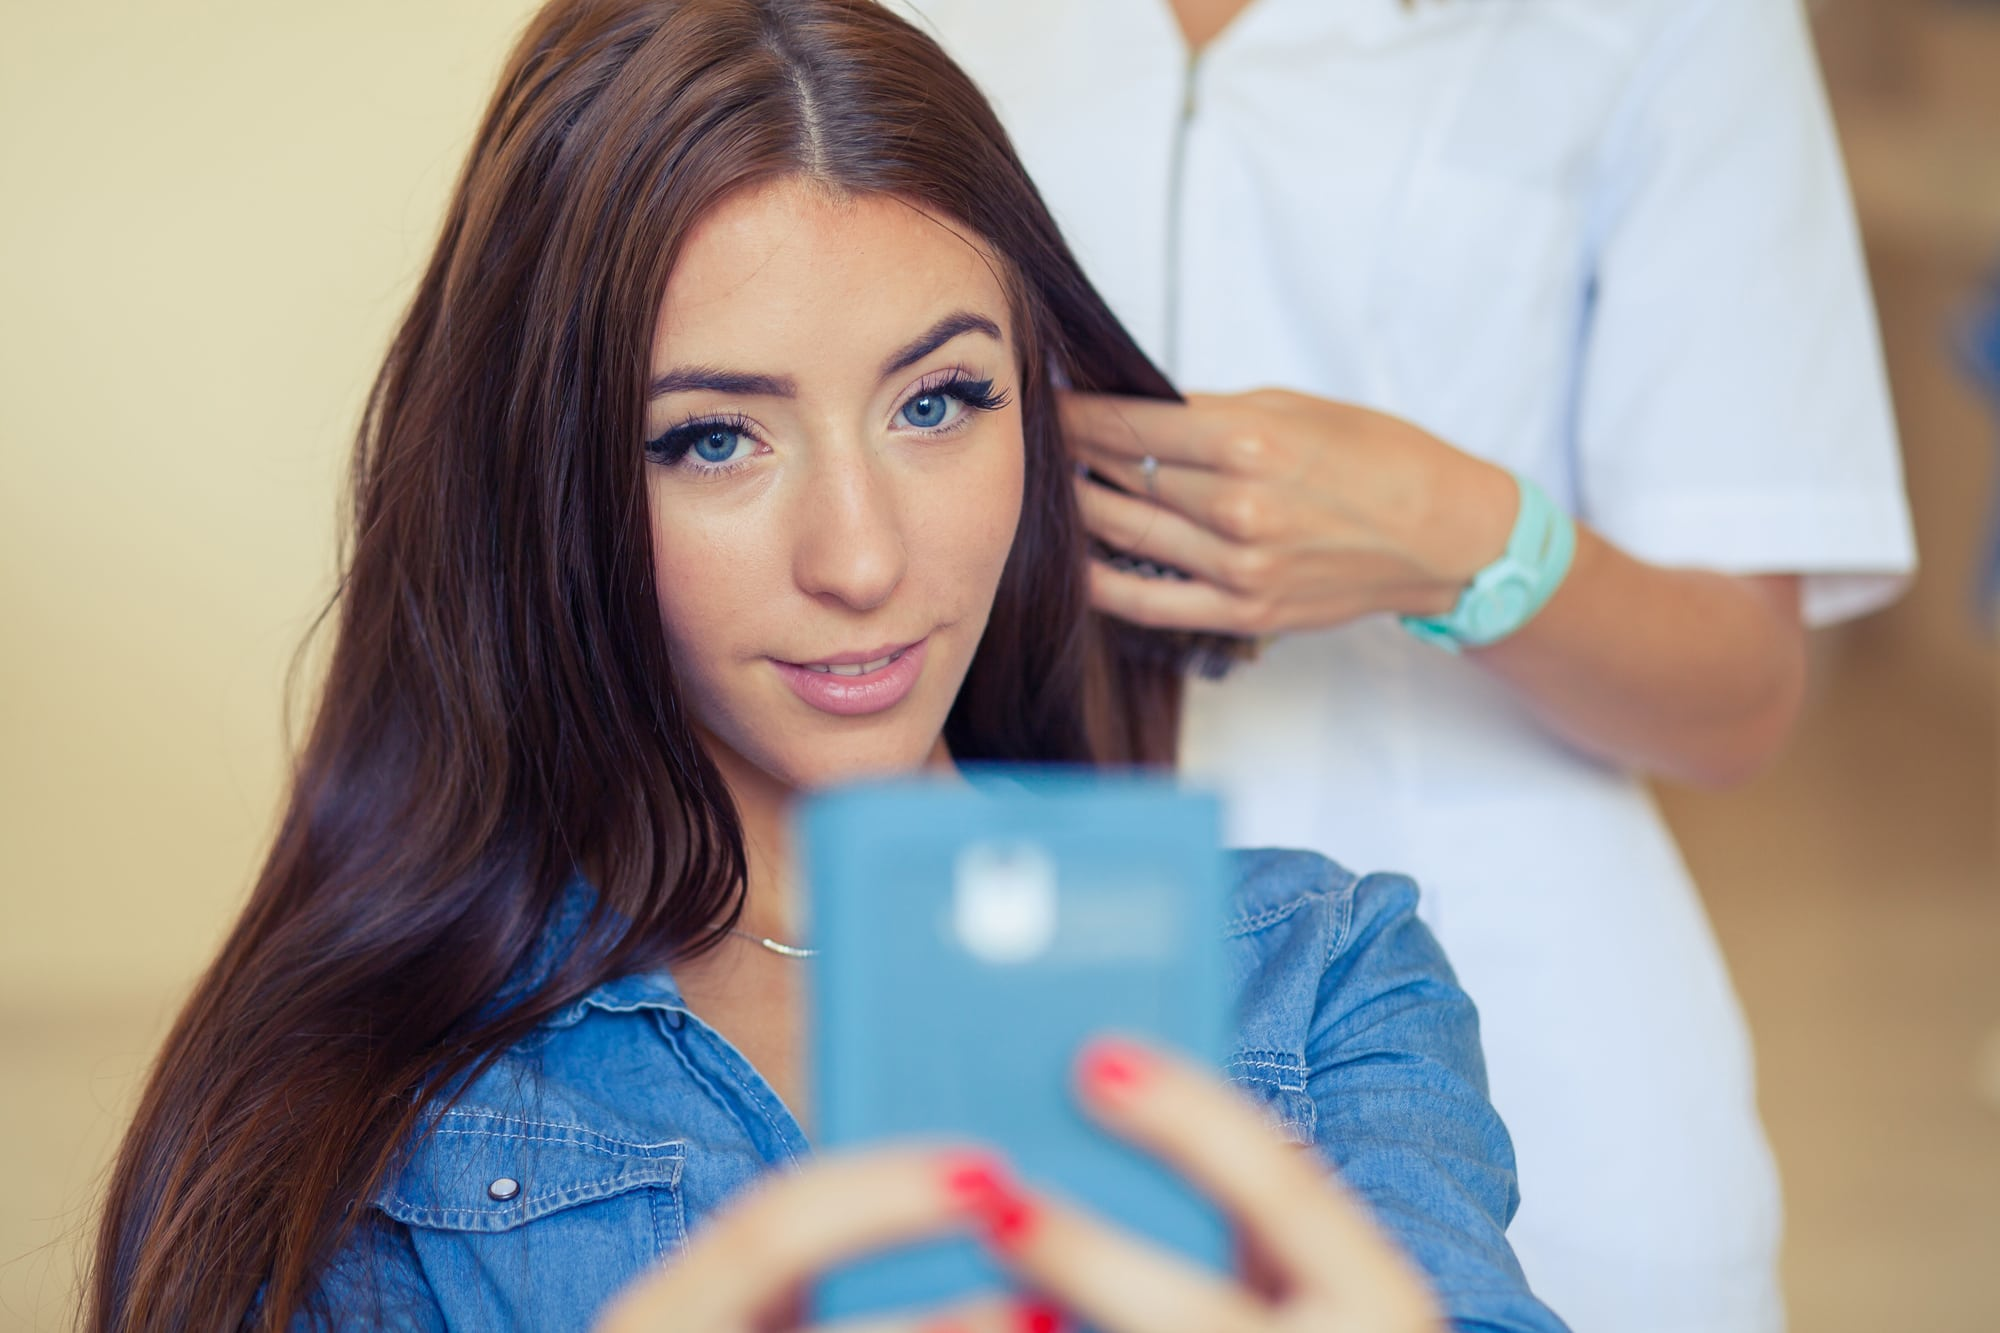 salon instagram marketing tips